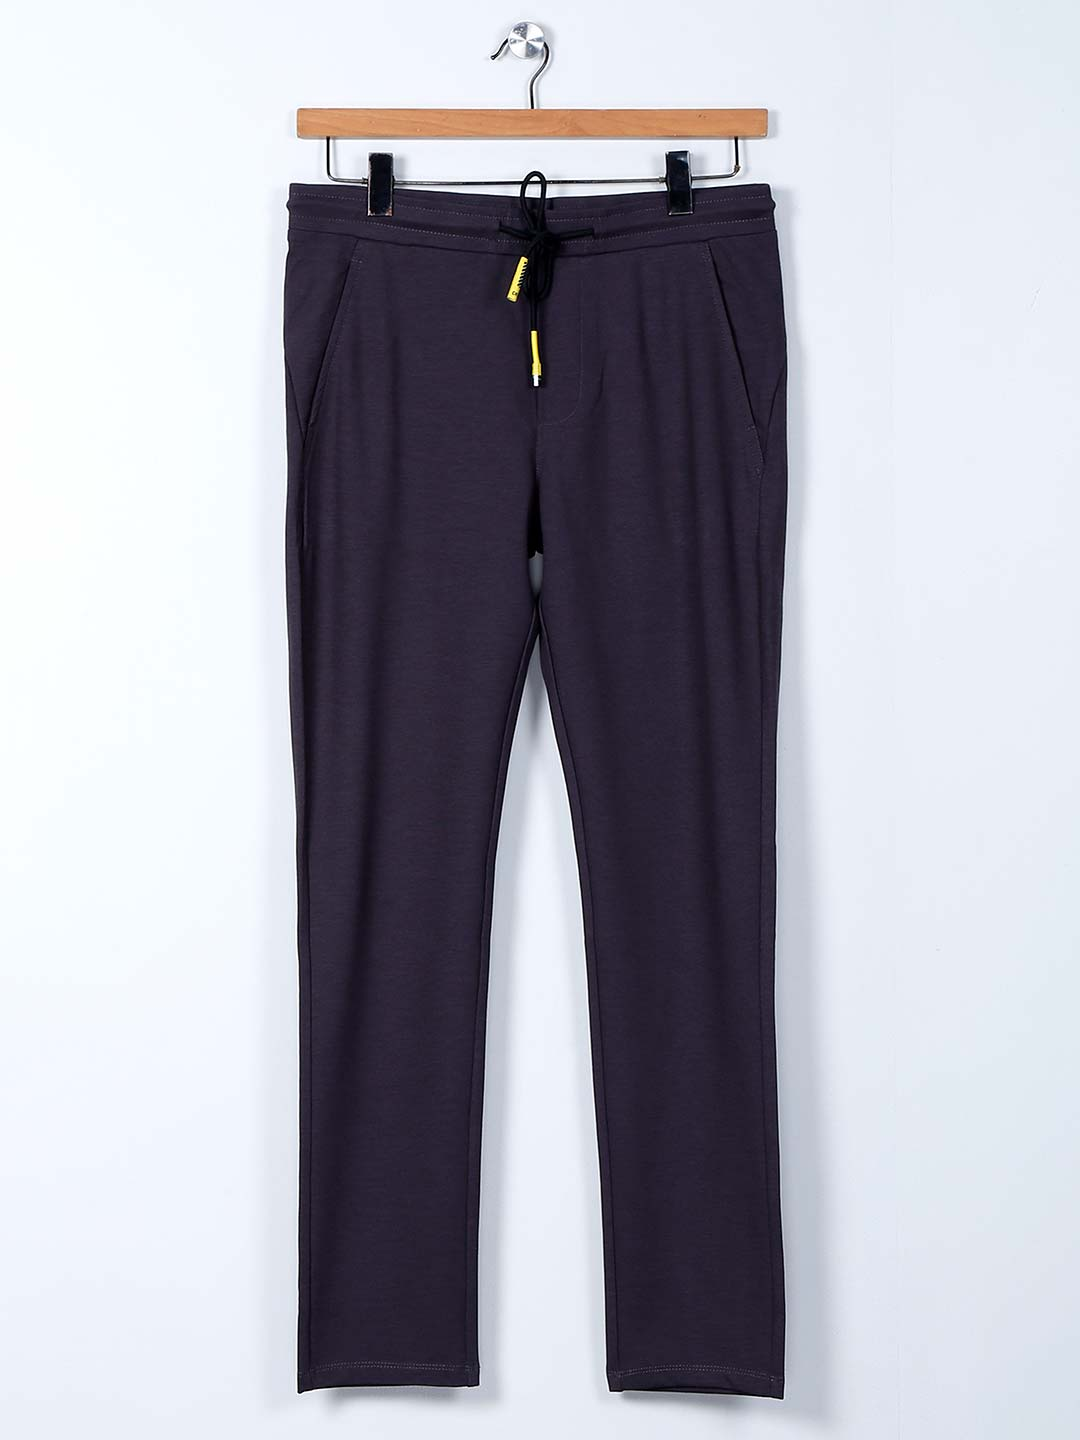 Cookyss grey narrow fit cotton mens track pant?imgeng=w_400